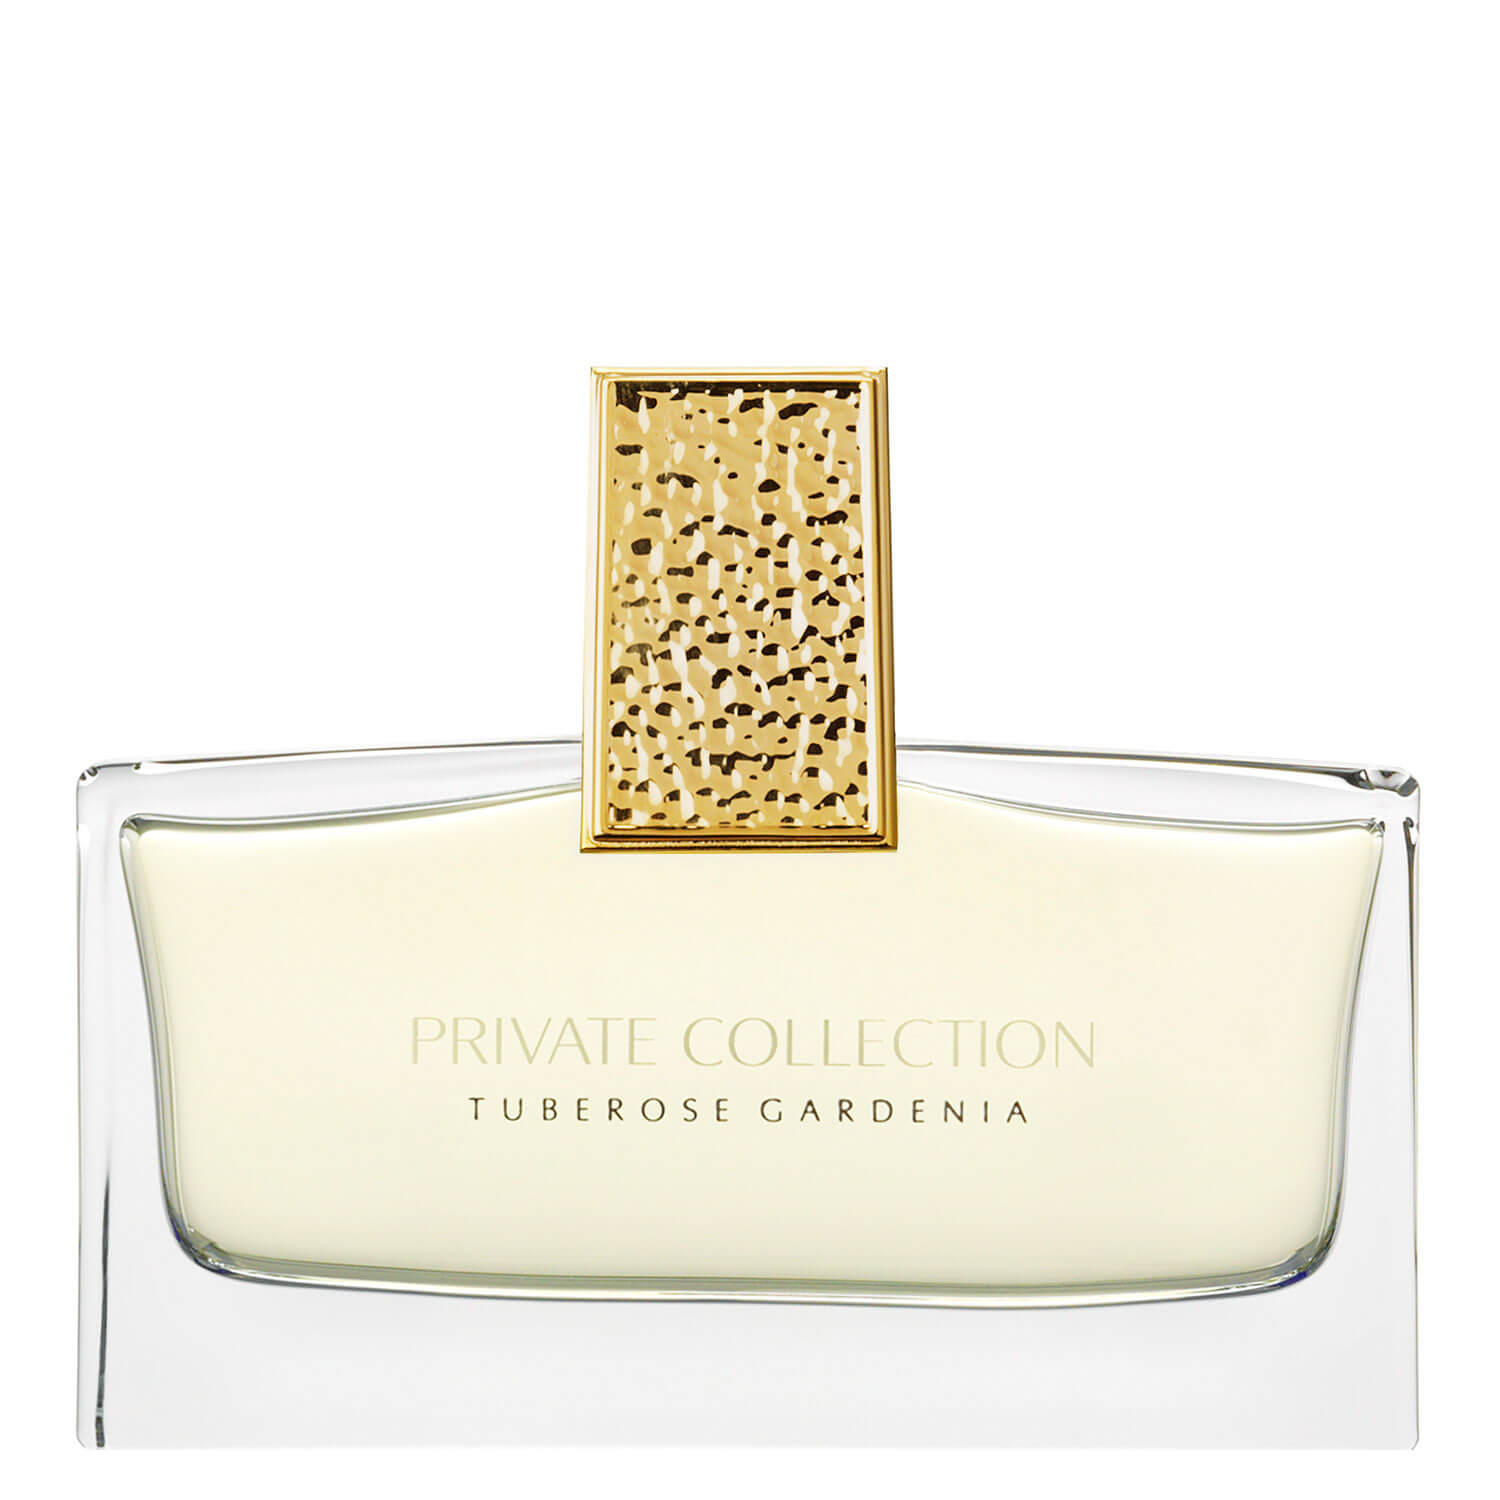 Private Collection - Tuberose Gardenia Eau de Parfum Spray